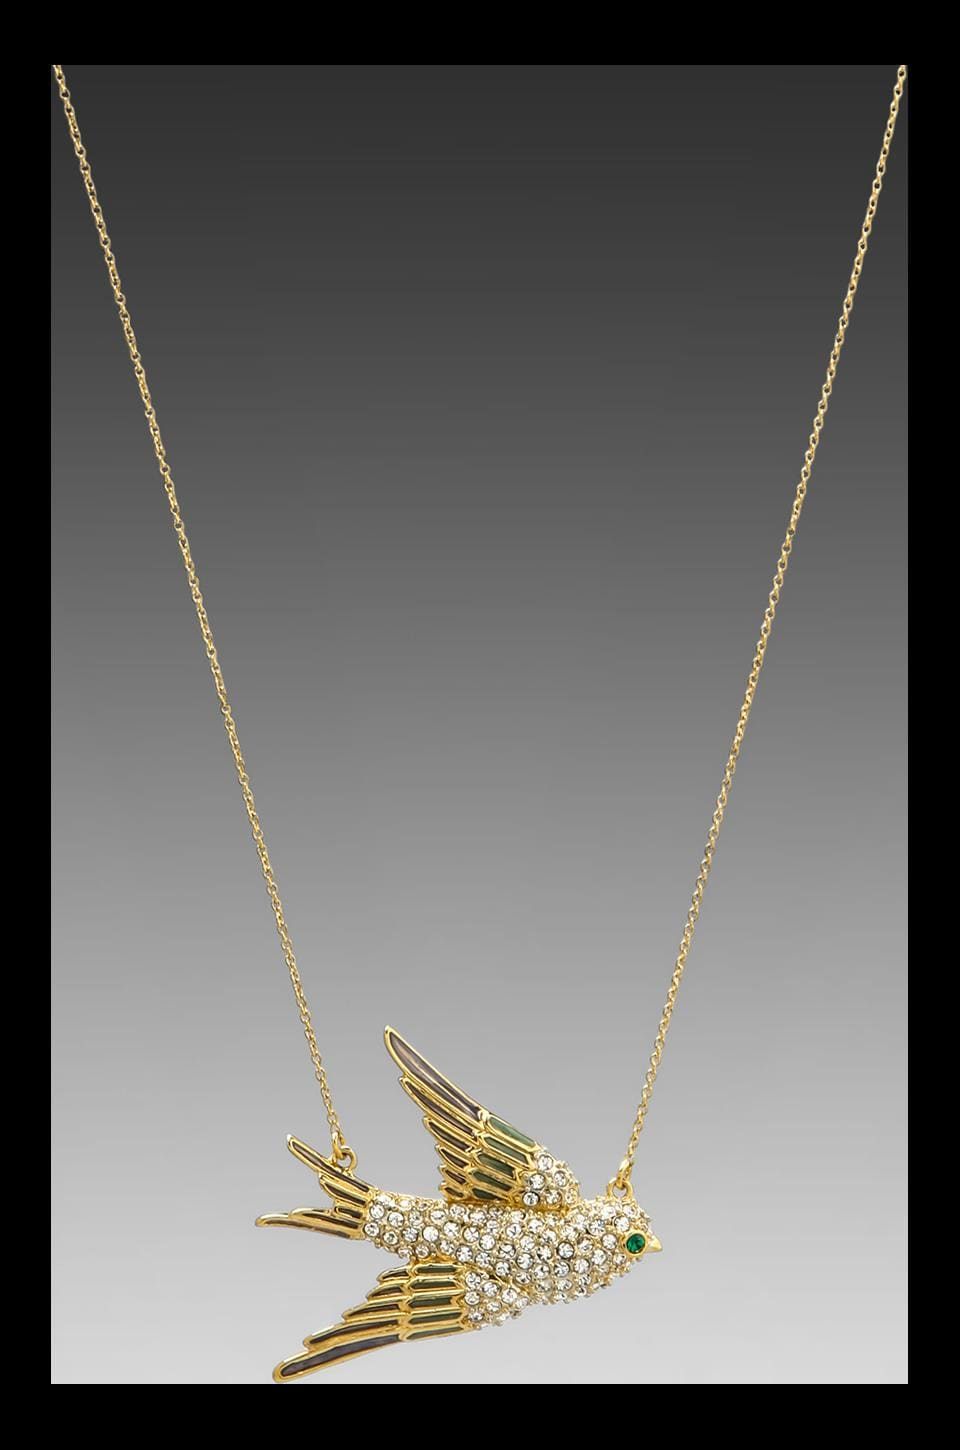 Juicy Couture Pave Bird Necklace in Gold